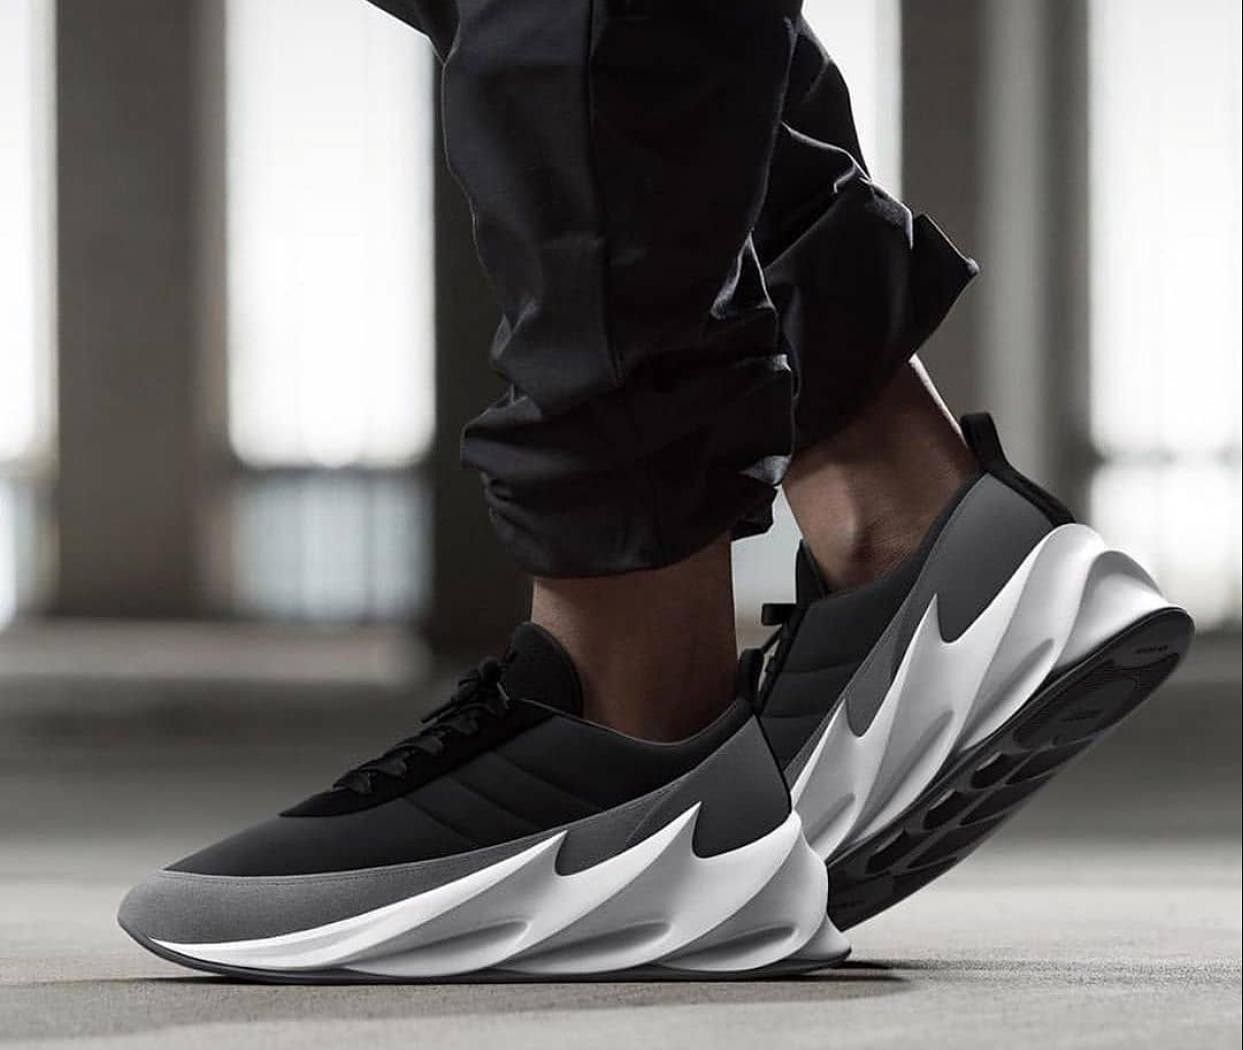 Adidas shark   Addidas shoes, Sneakers fashion, Hype shoes